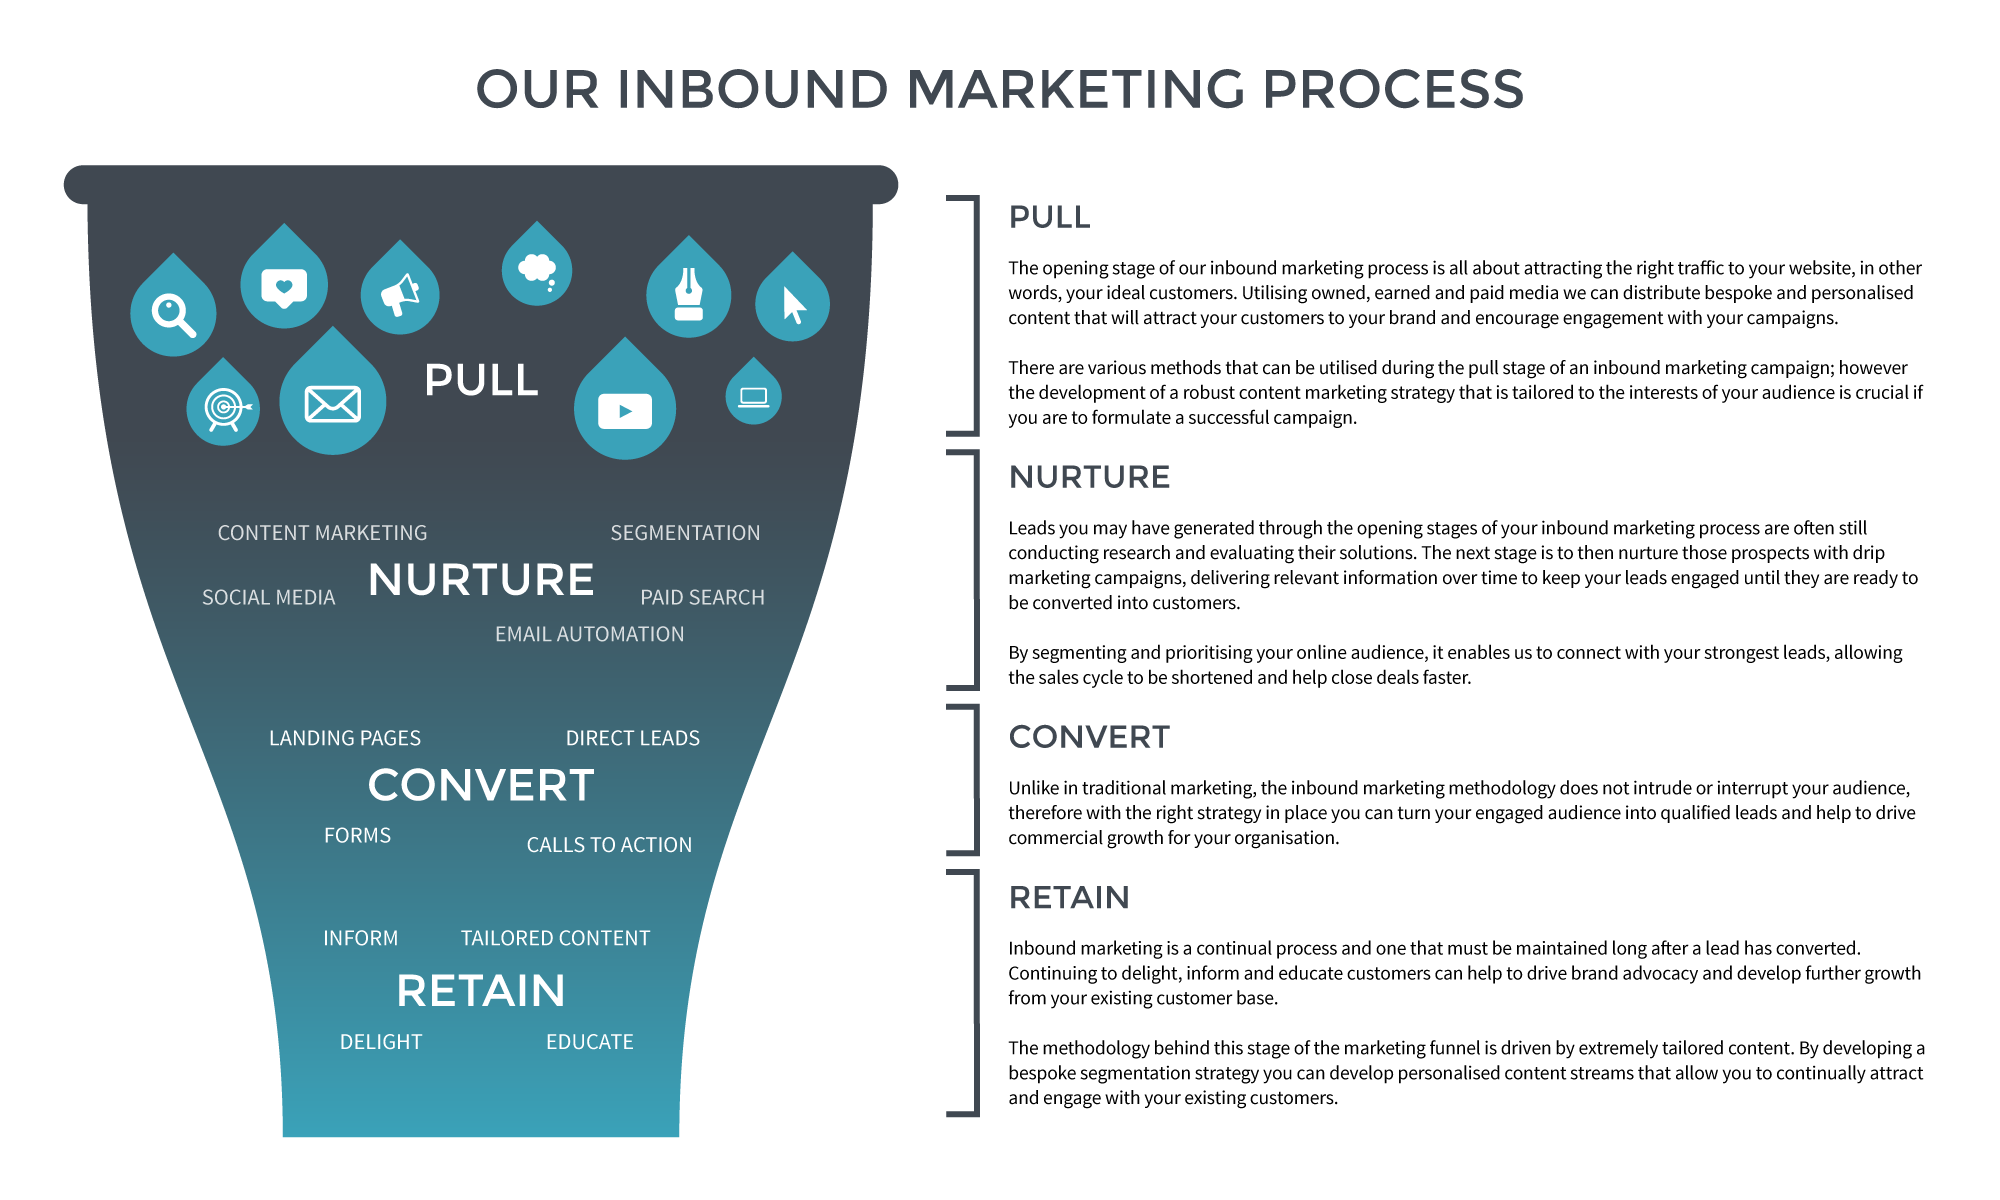 Our inbound marketing process